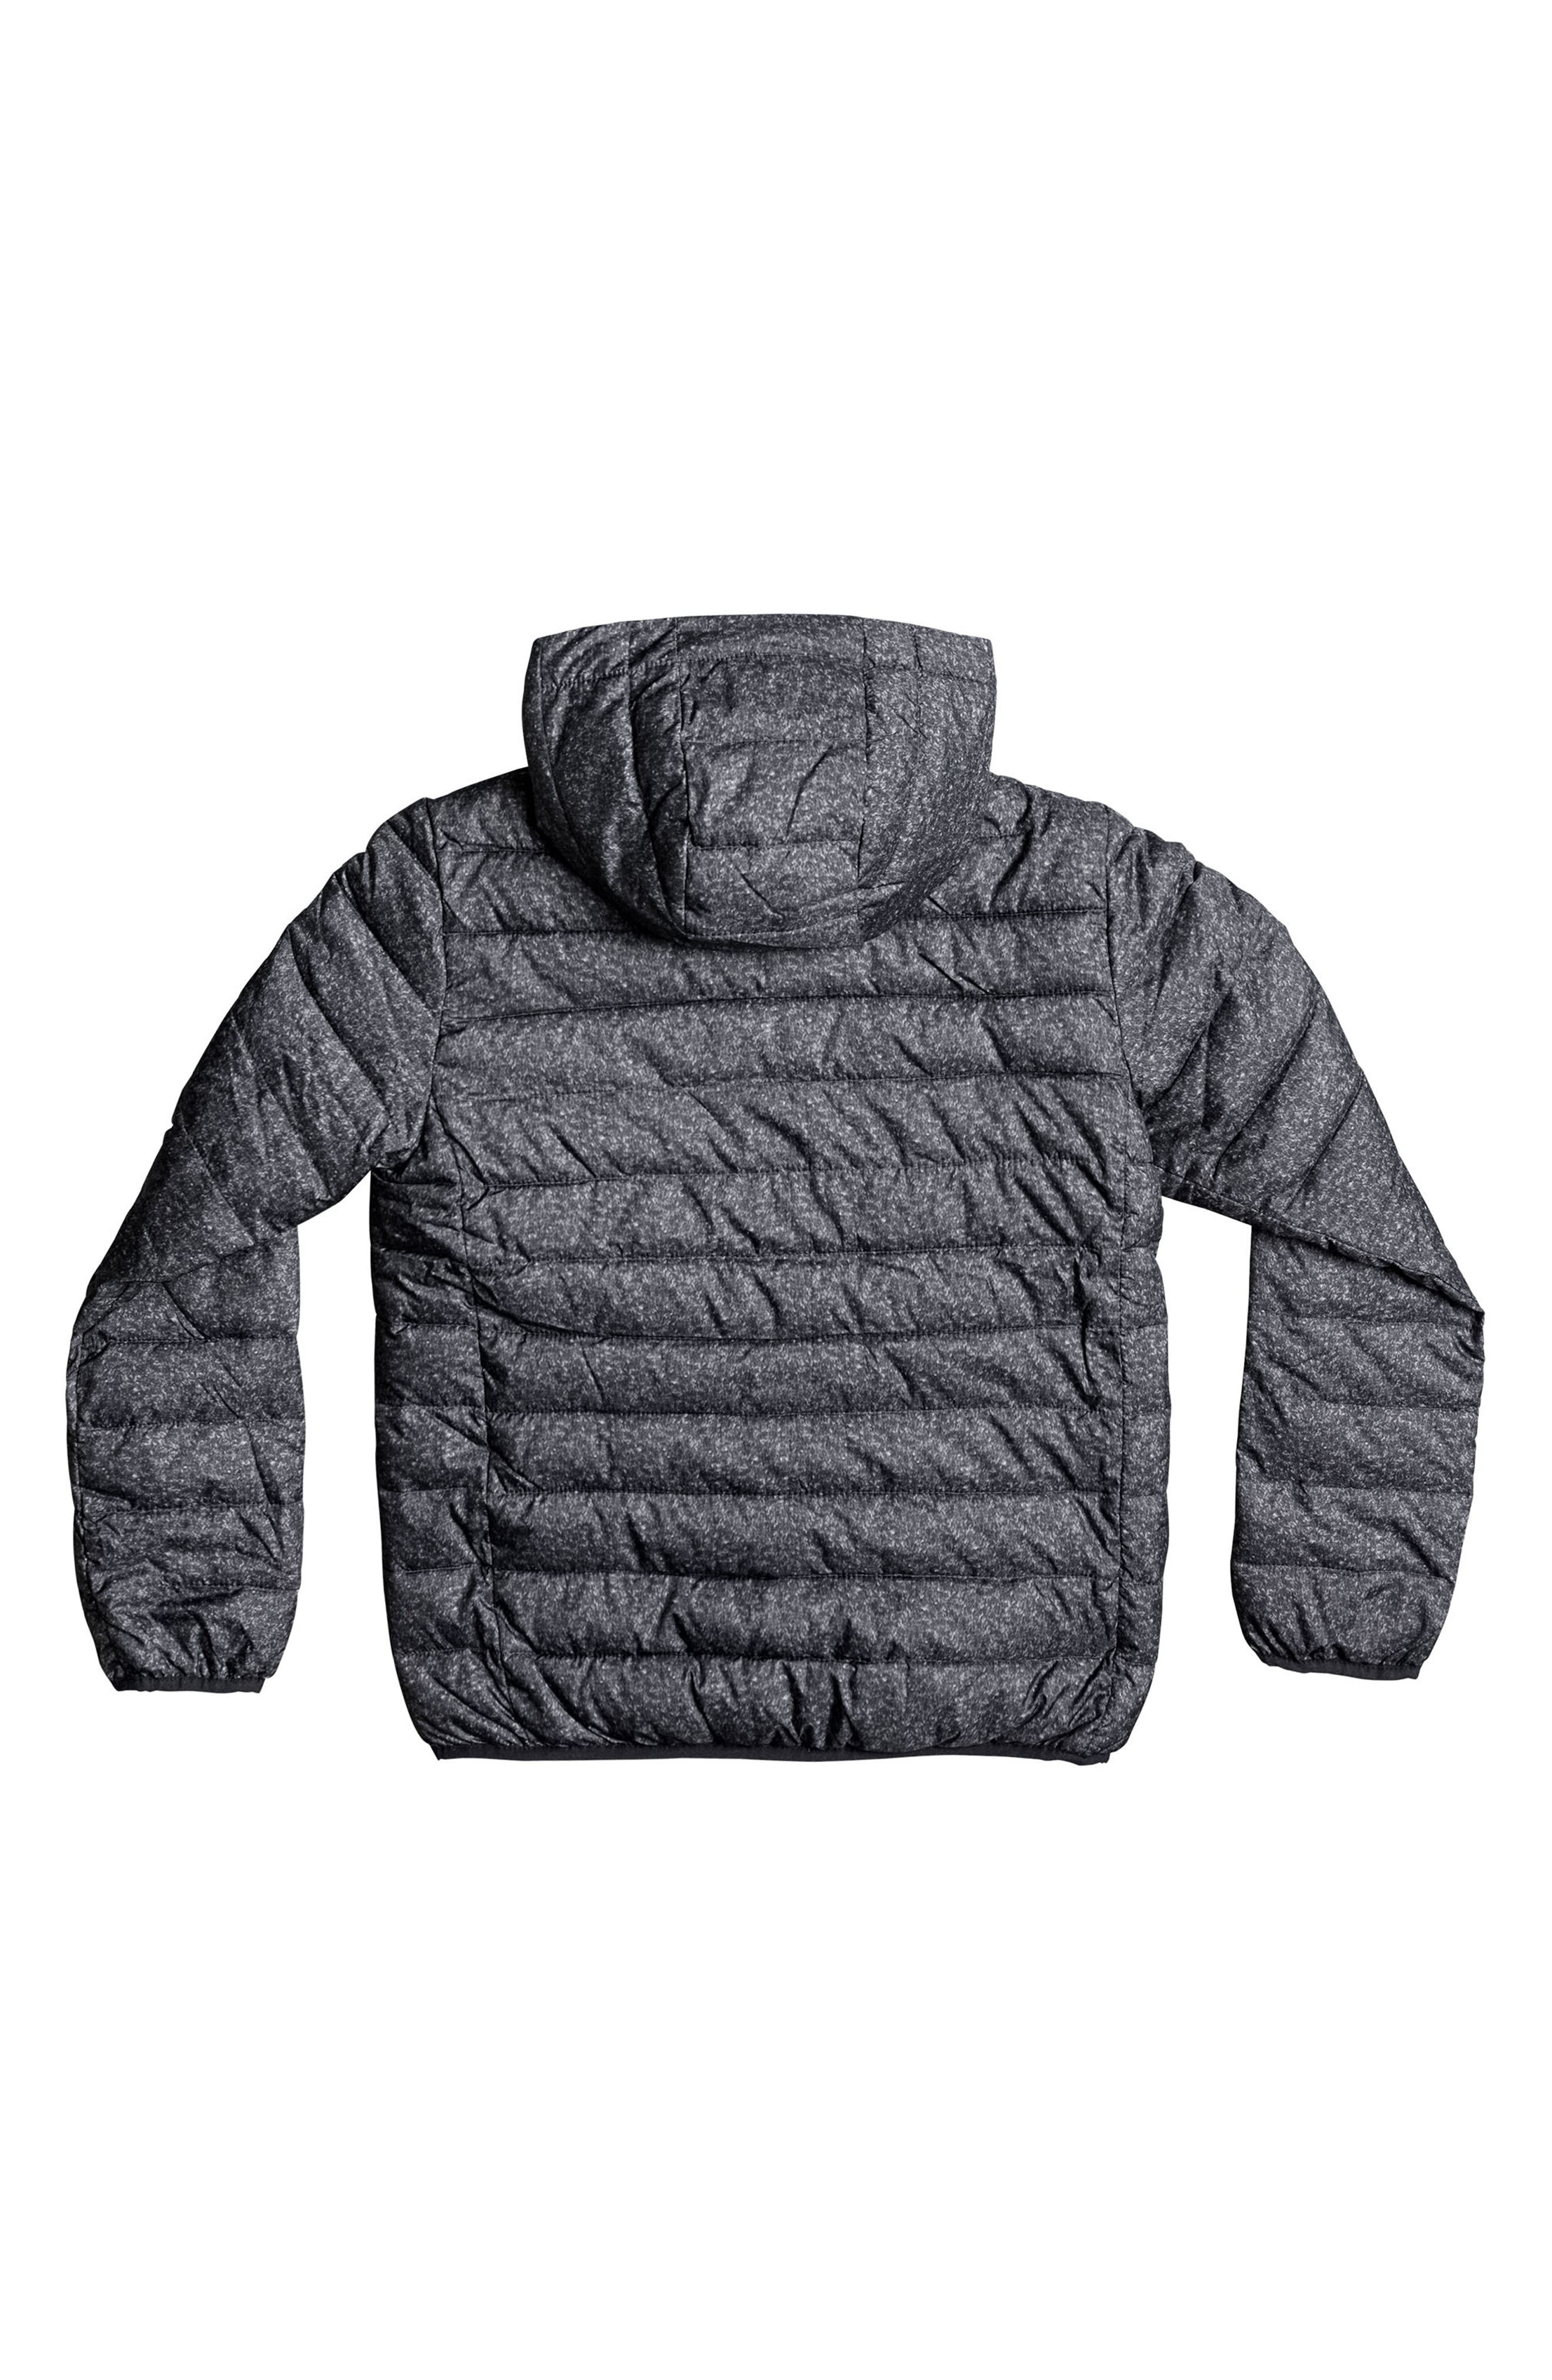 Scaly Water Resistant Hooded Puffer Jacket,                             Alternate thumbnail 2, color,                             Dark Grey Heather Scaly